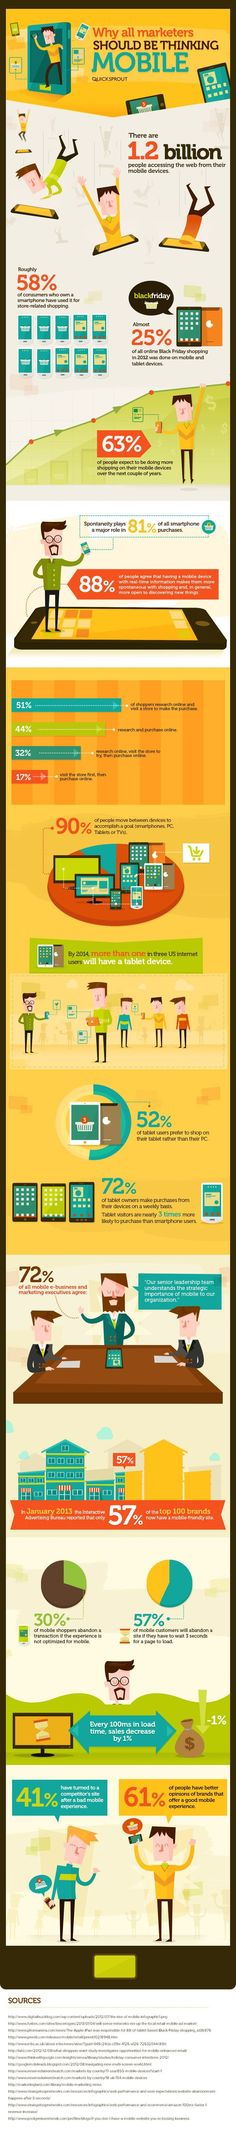 Why All Marketers Should Be Thinking Mobile #infografía